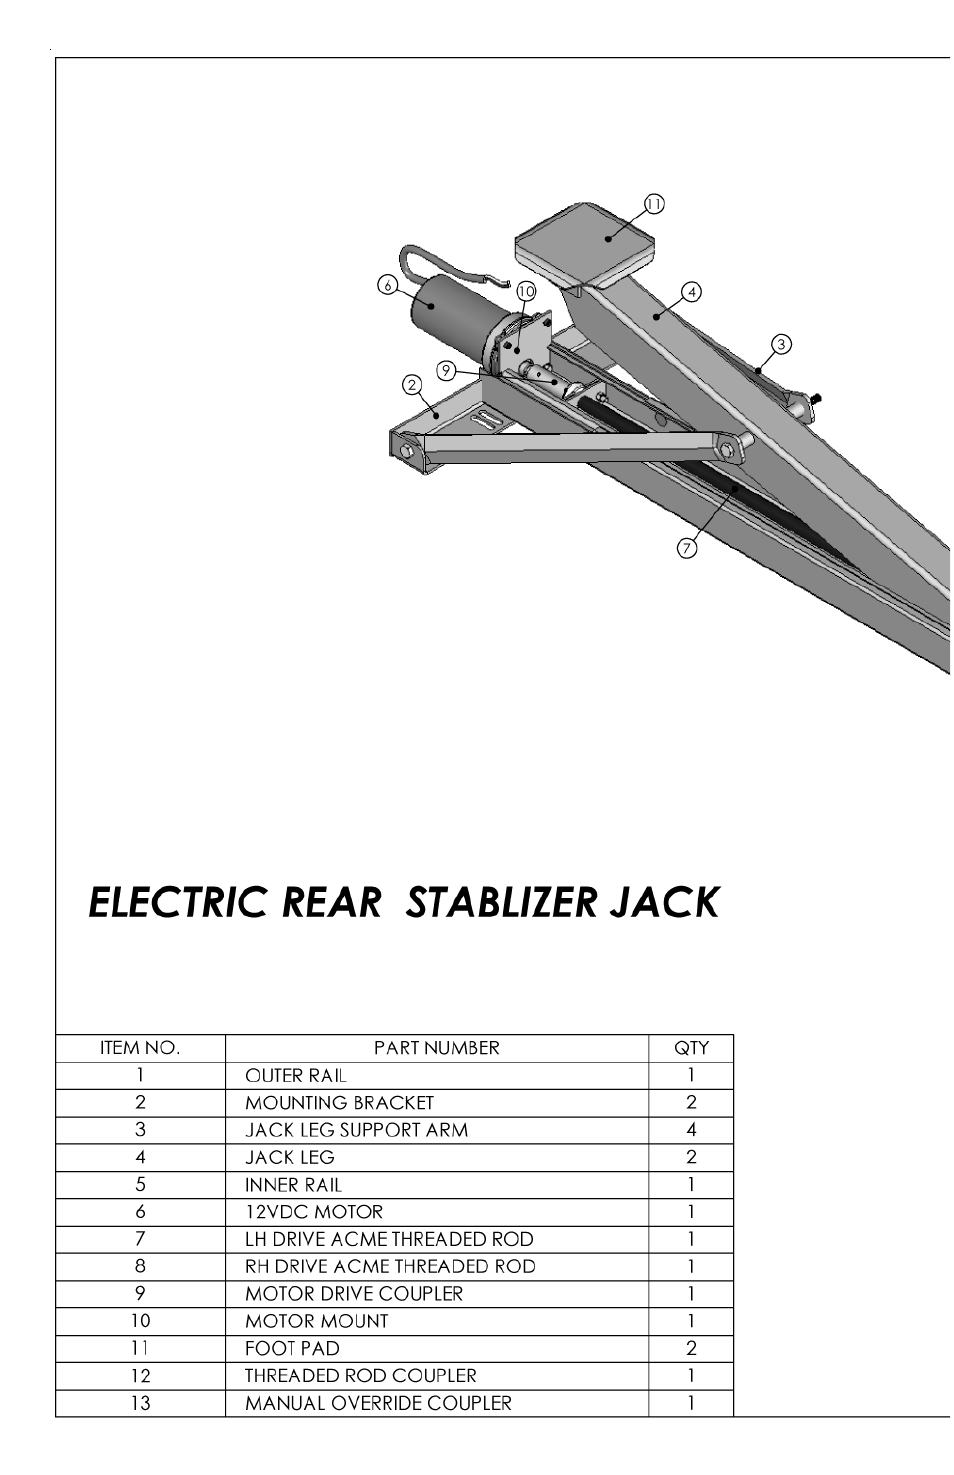 Lippert Components Electric Rear Stabilizer Jack User